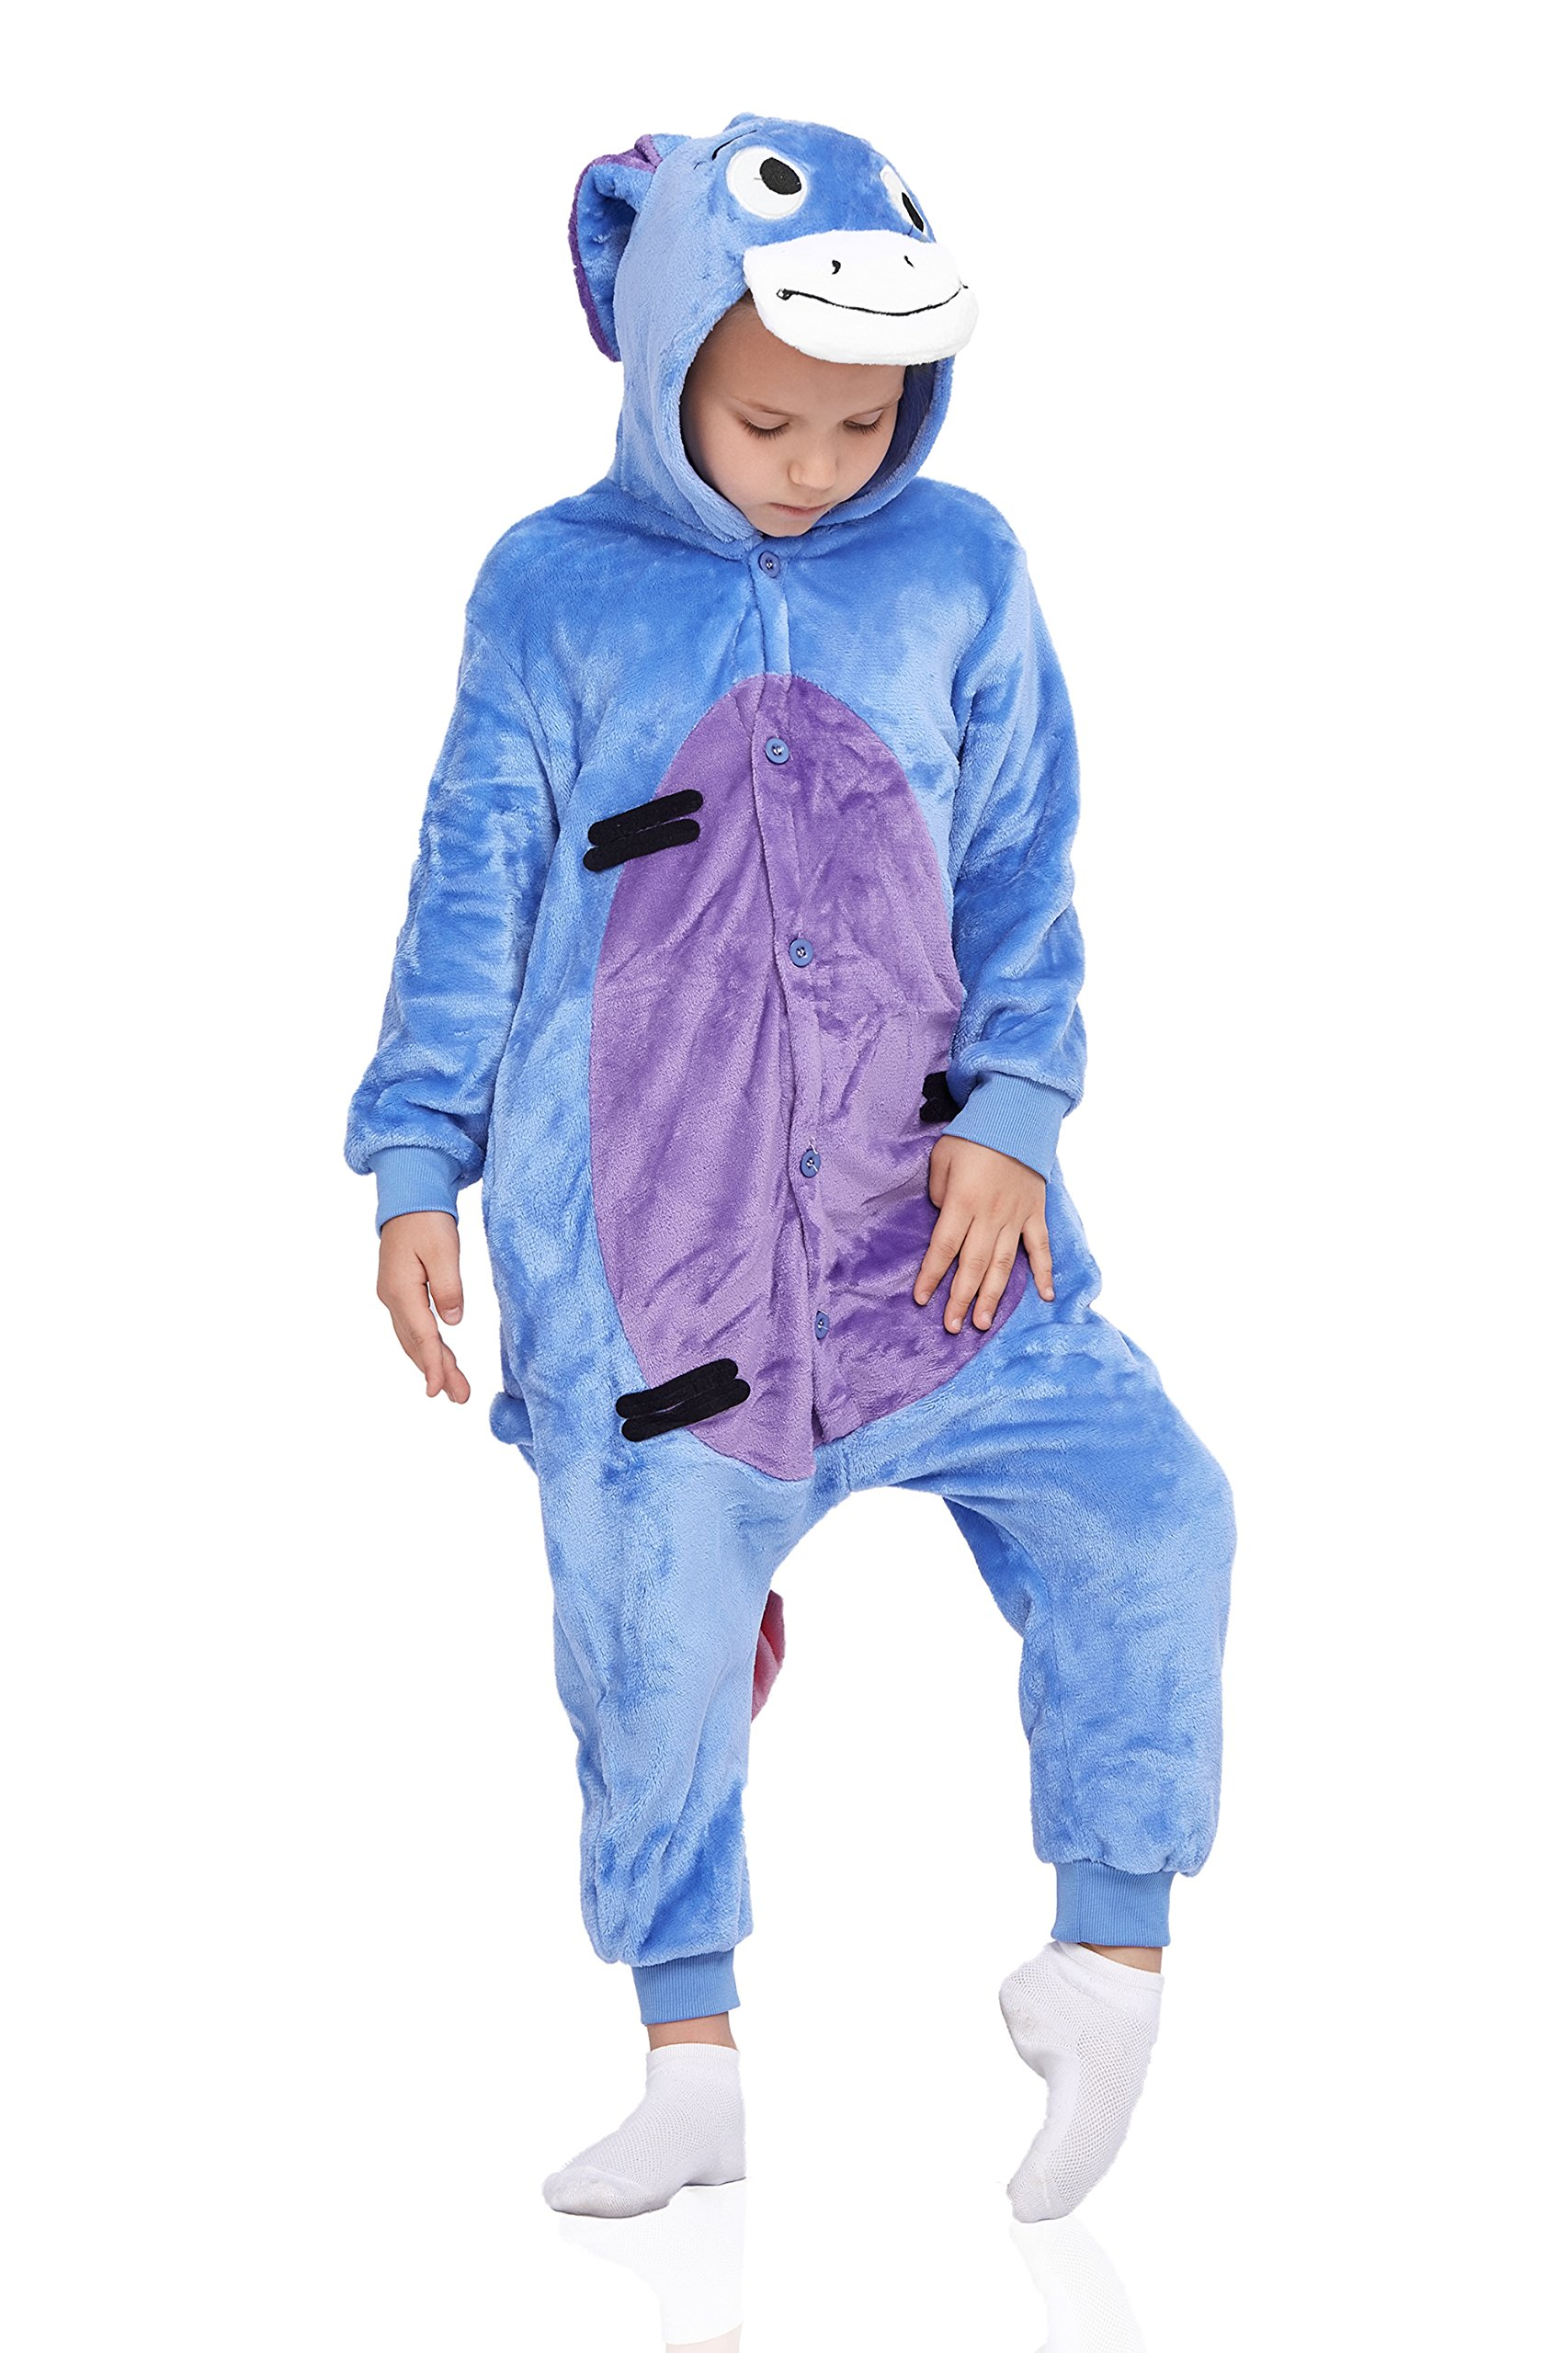 Nothing But Love Kids Donkey Pajamas Animal Onesie Kigurumi Plush Soft One Piece Cosplay Costume (Medium, Smoky Blue)